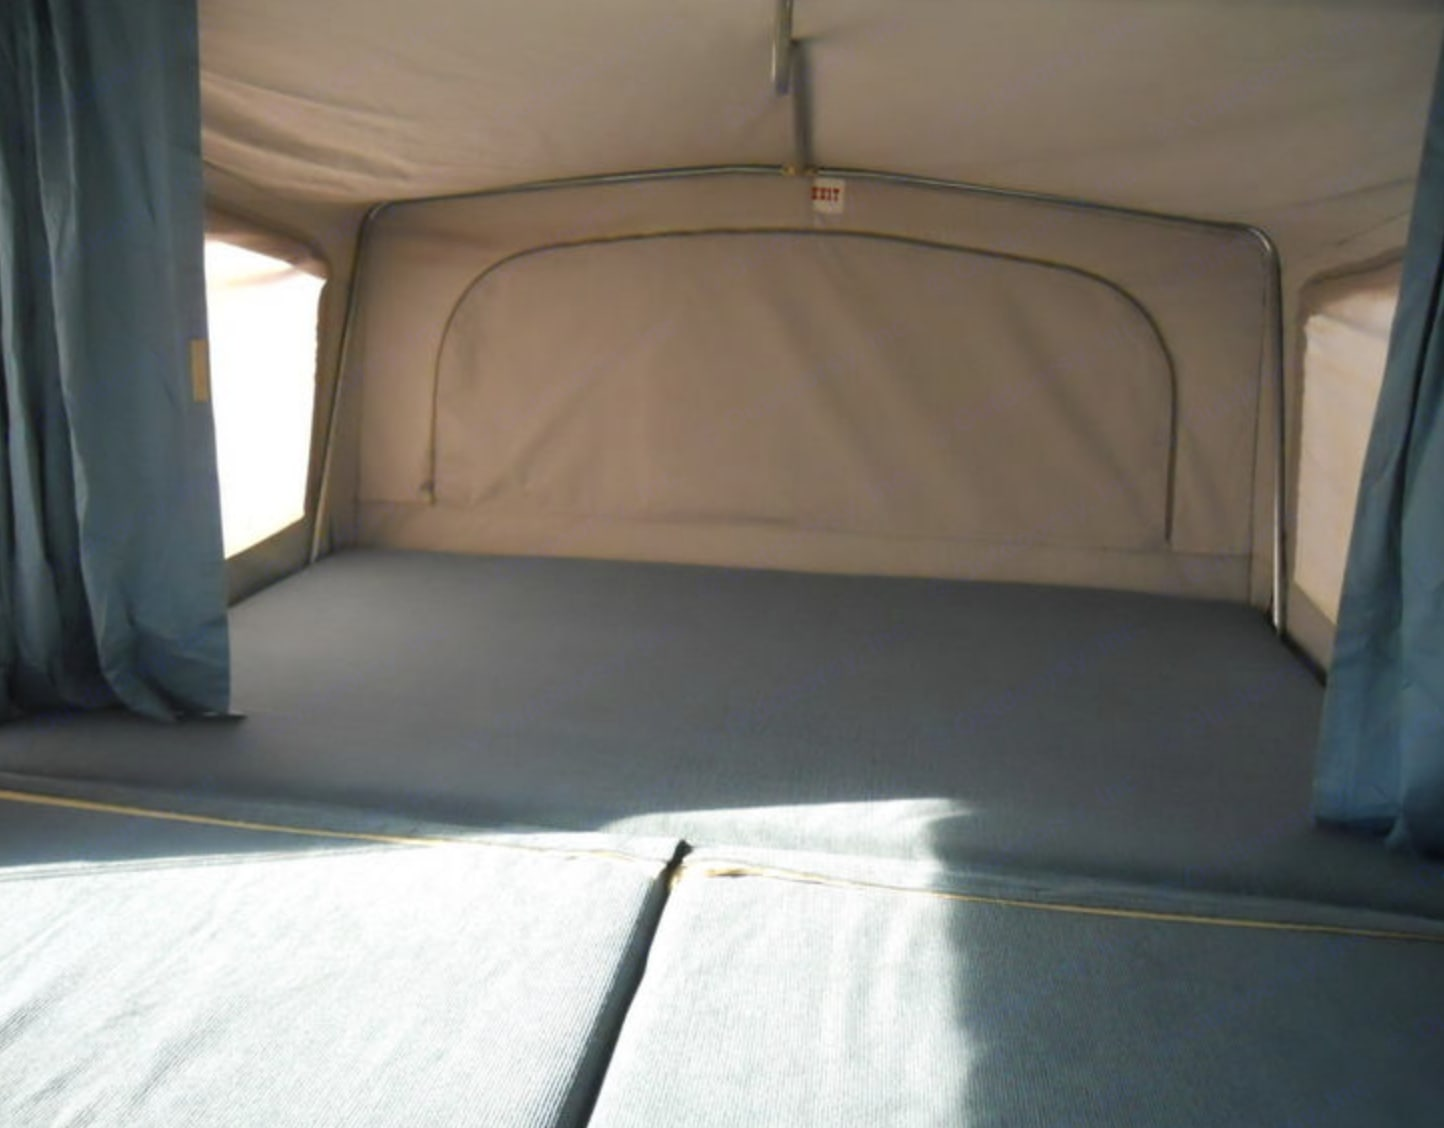 King-sized bed and privacy curtains; also a ceiling hanging rod for clothes on this side. Jayco Designer 1995